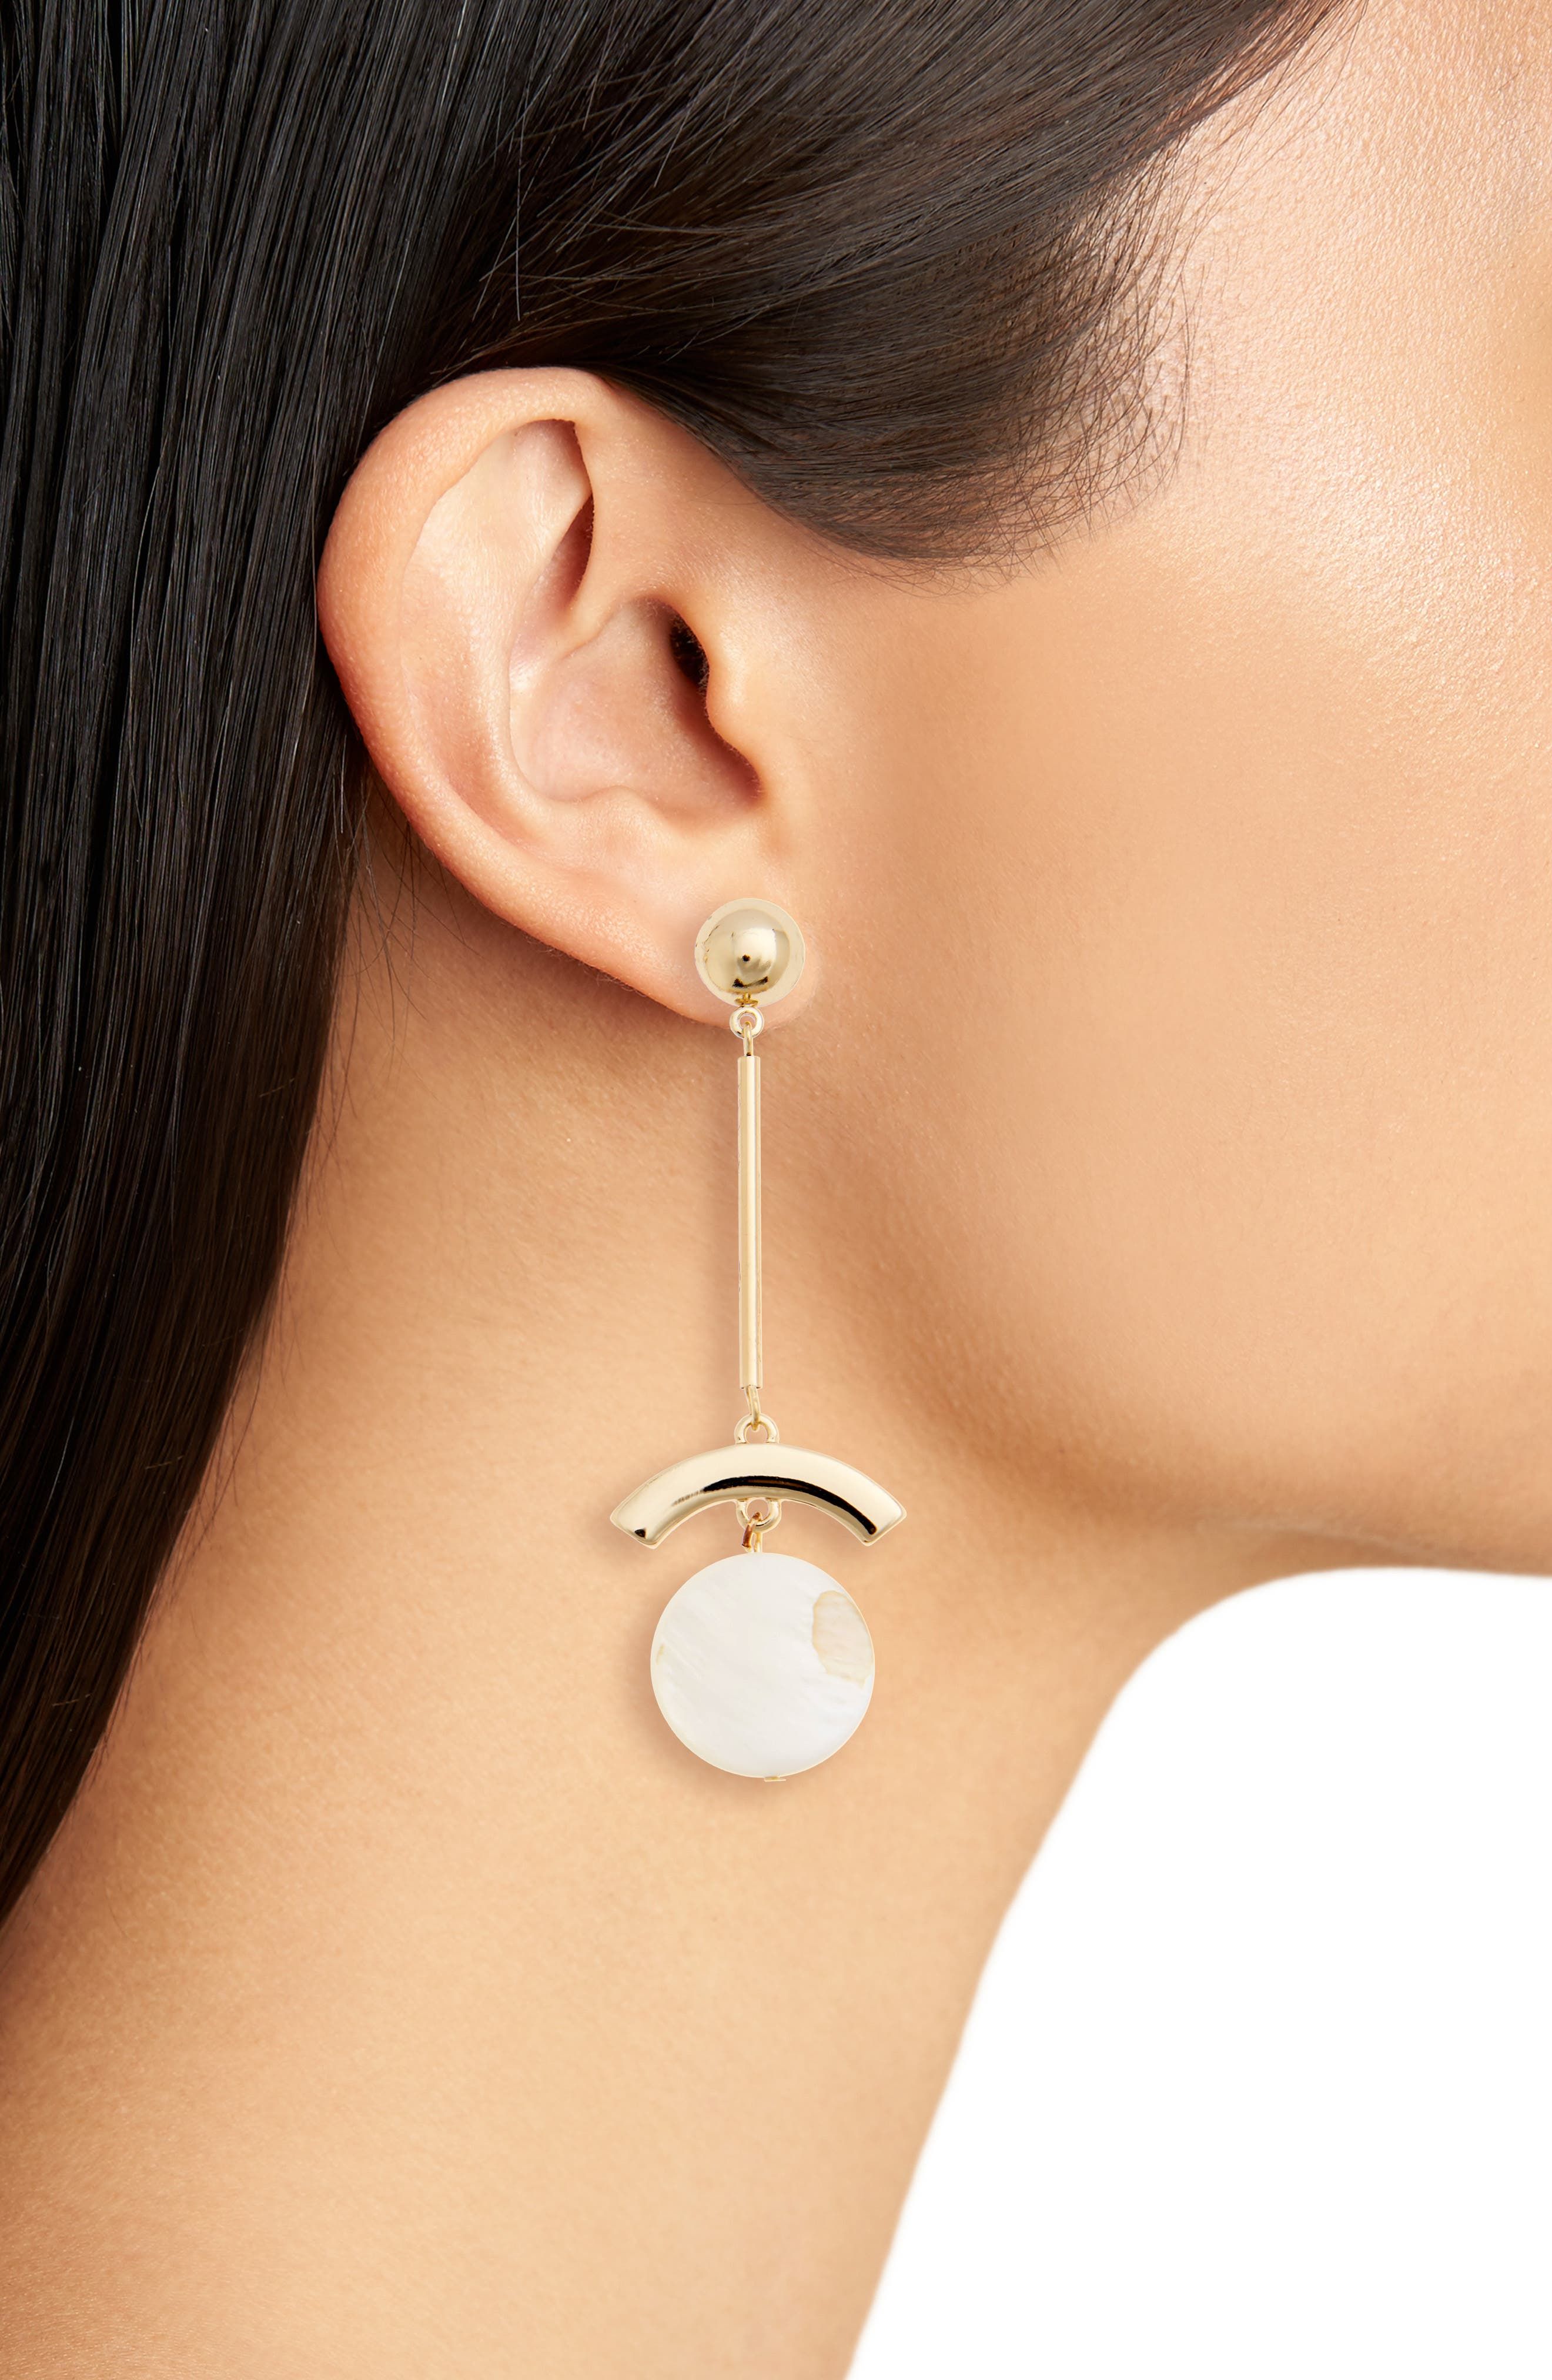 Mother of Pearl Drop Earrings,                             Alternate thumbnail 2, color,                             Gold/ White